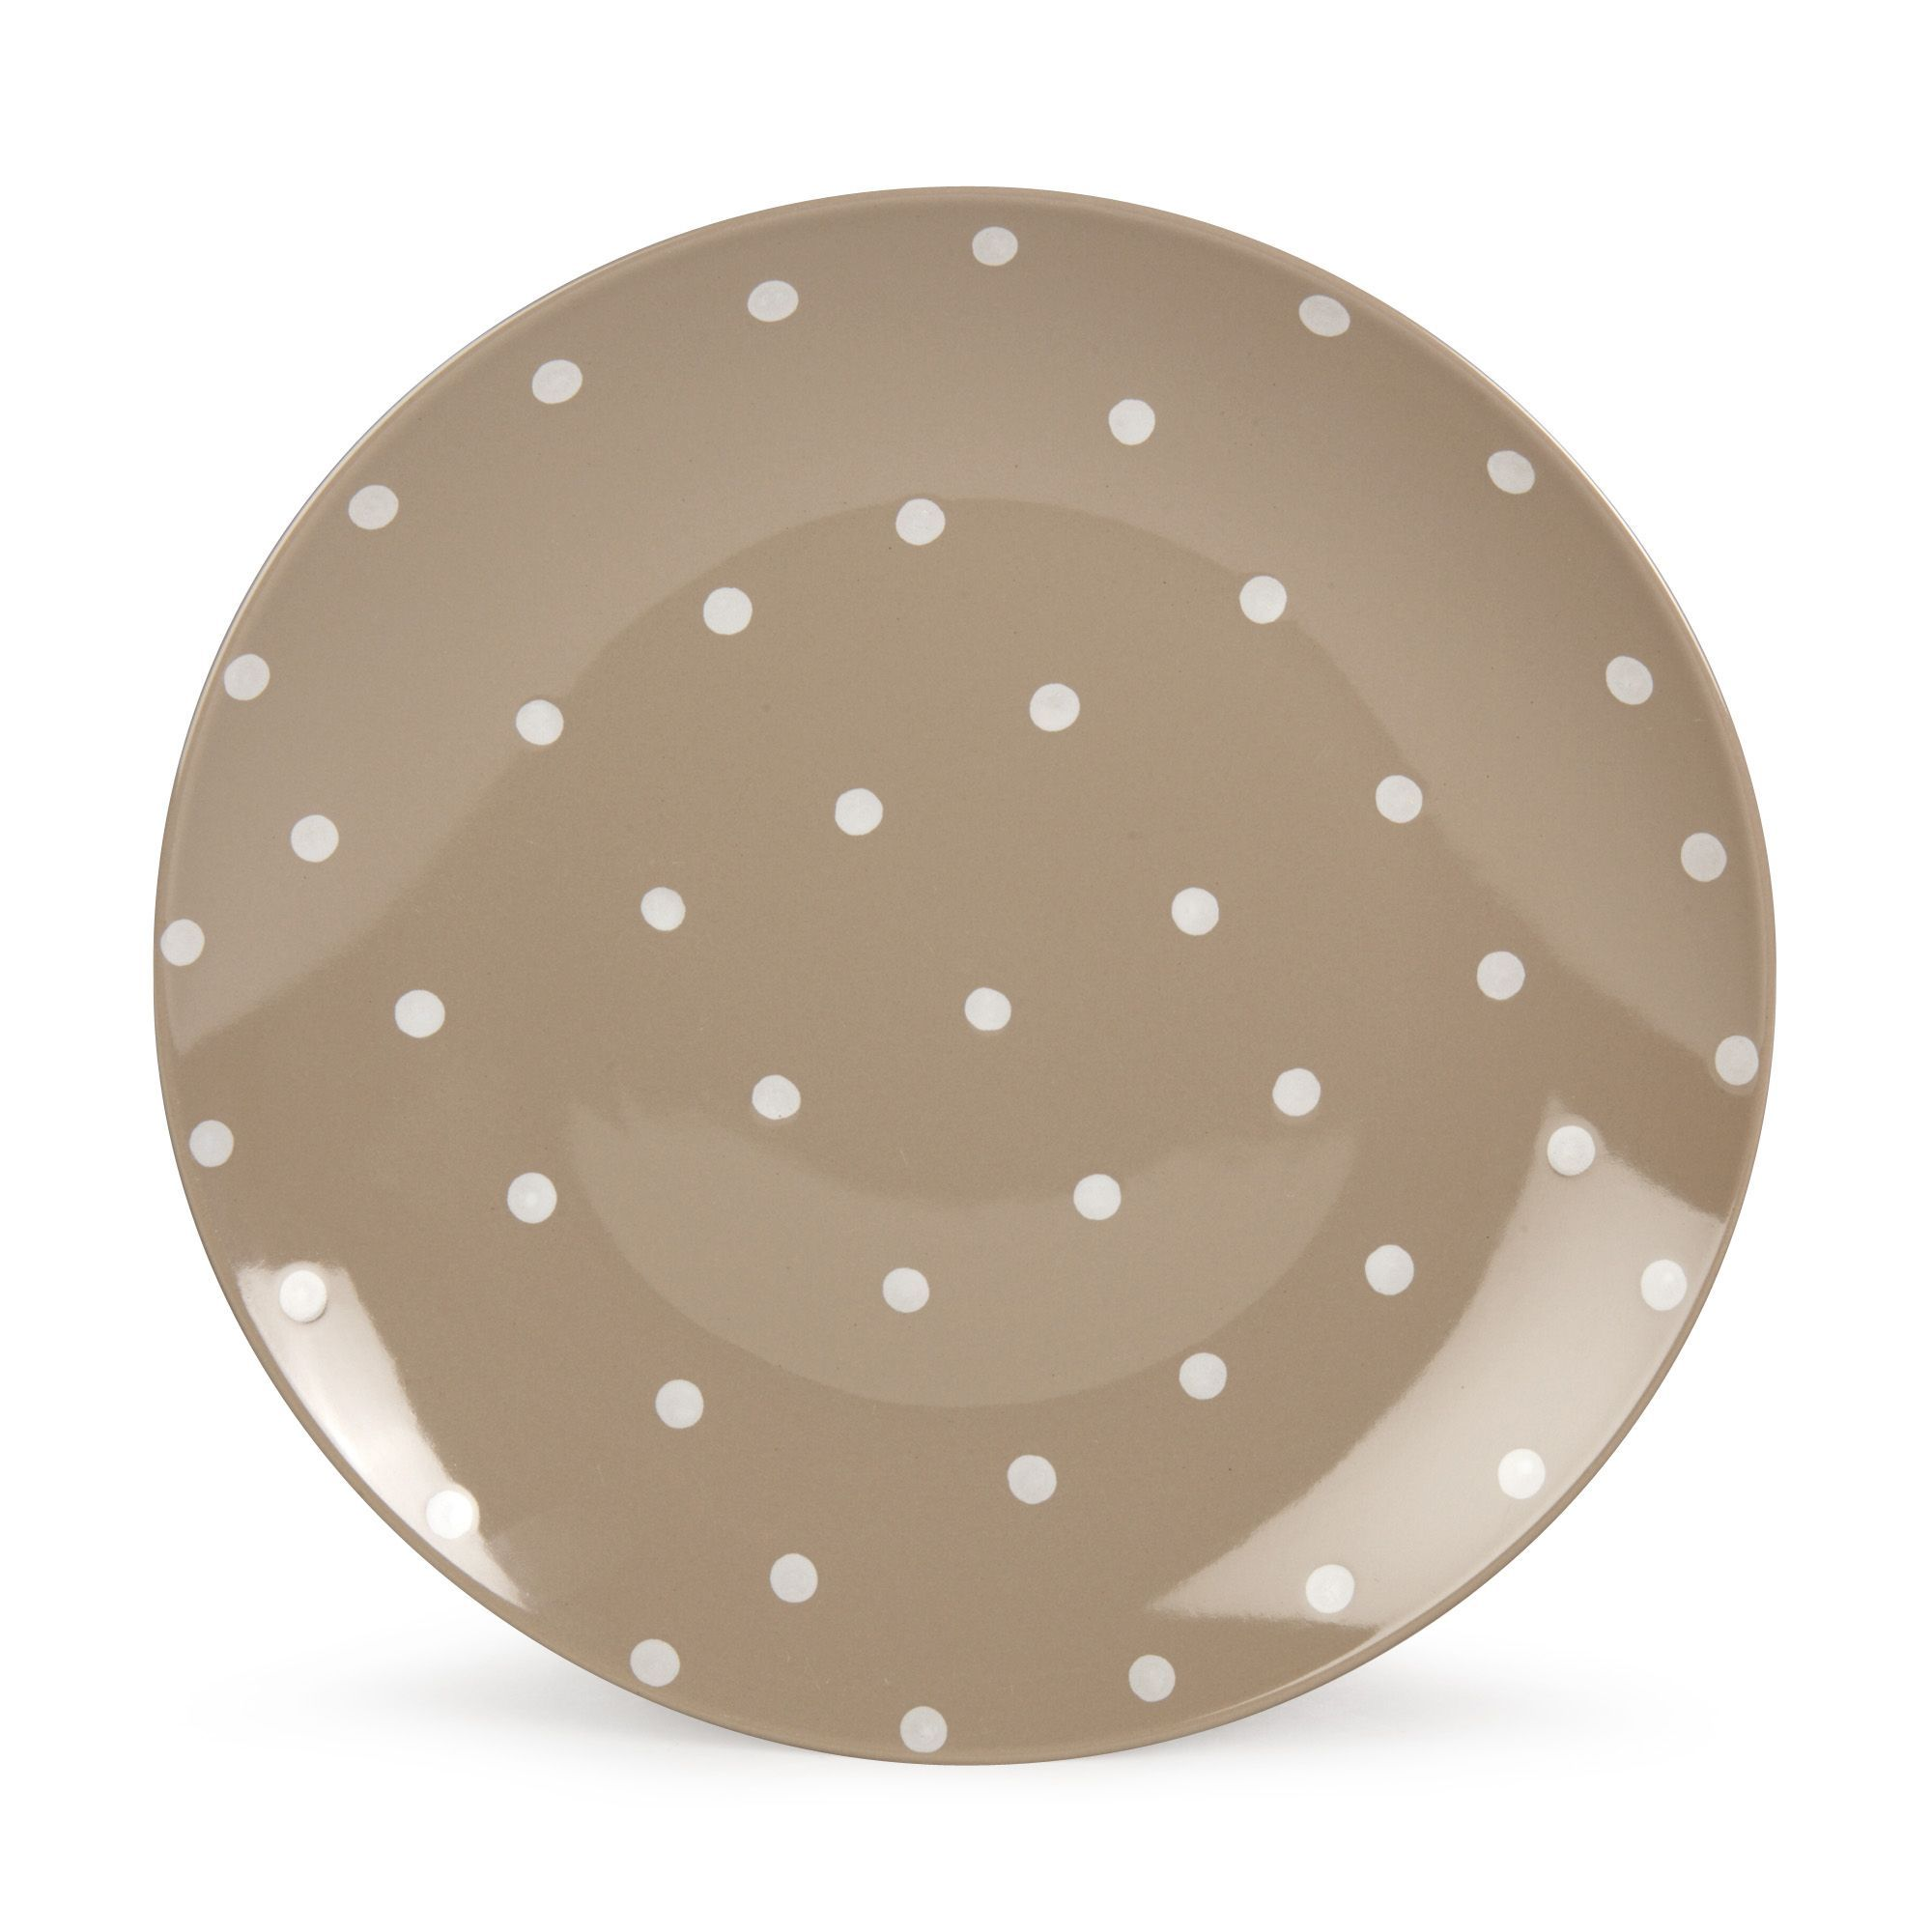 assiette plate beige pois taupe blanc vaisselle cl mence les assiettes plates assiettes. Black Bedroom Furniture Sets. Home Design Ideas